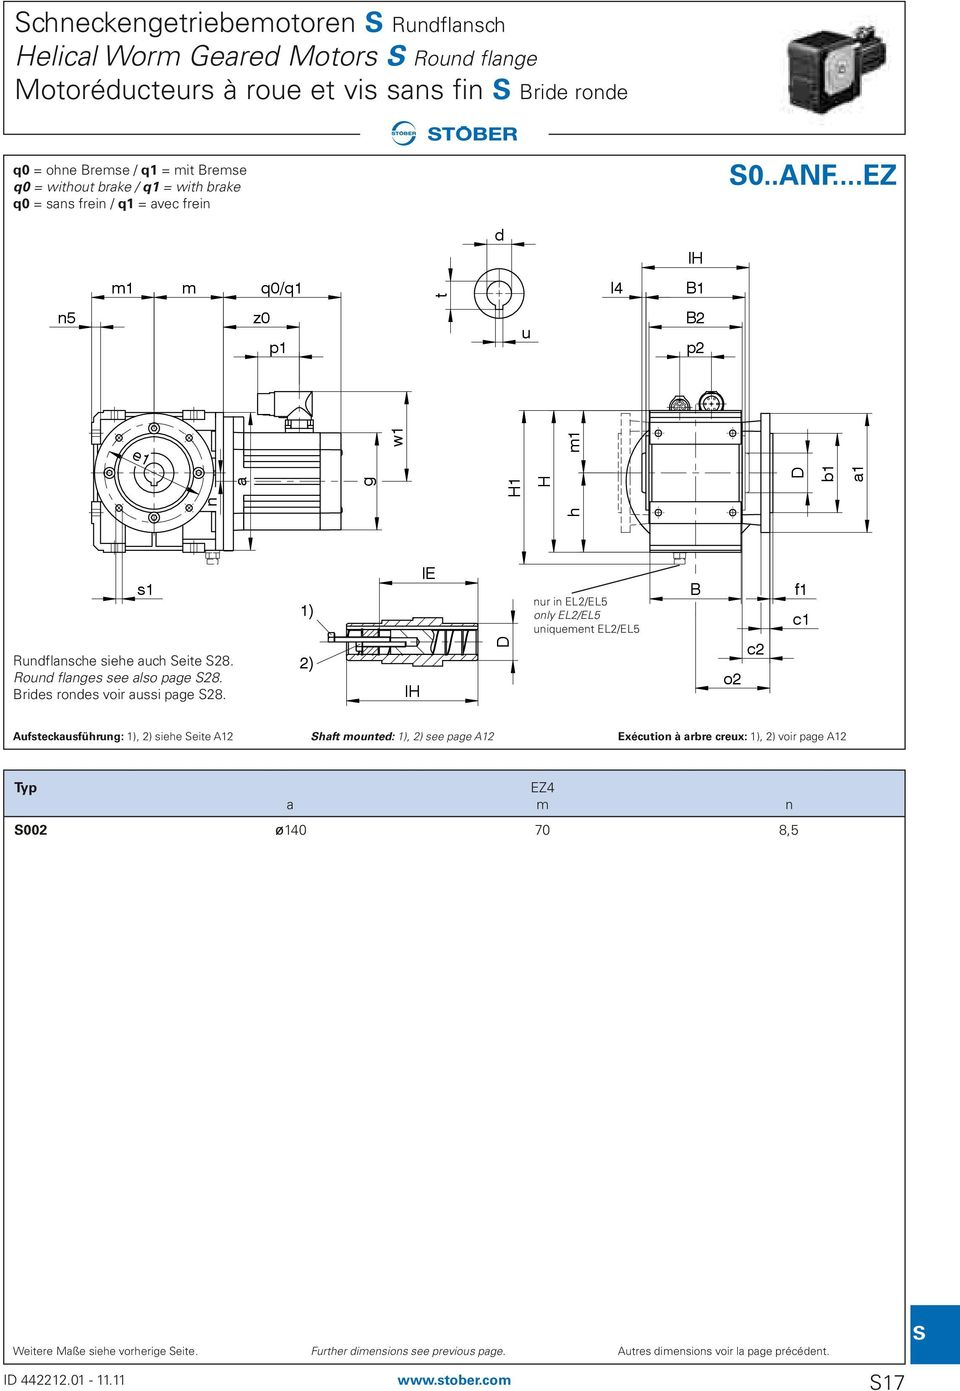 Roun flanges see also page 28. Bries rones voir aussi page 28.